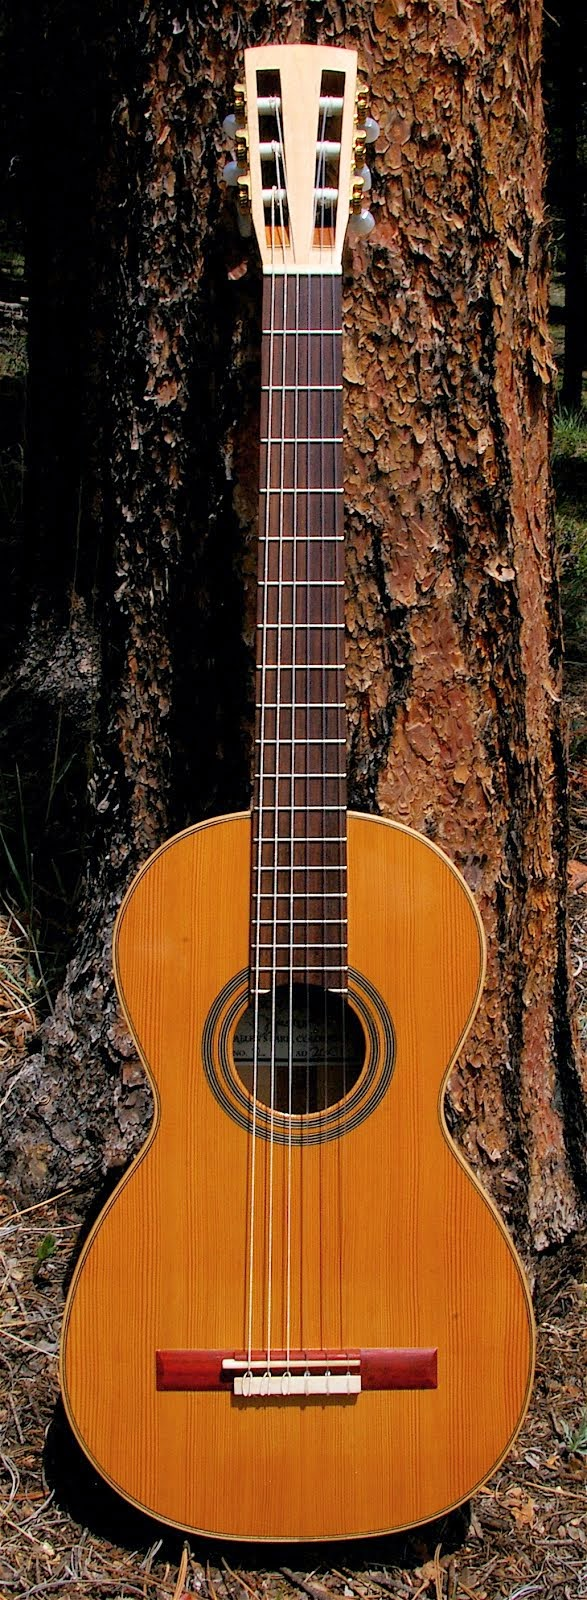 For Sale: 1816 Jose Martinez Parlor Guitar Model